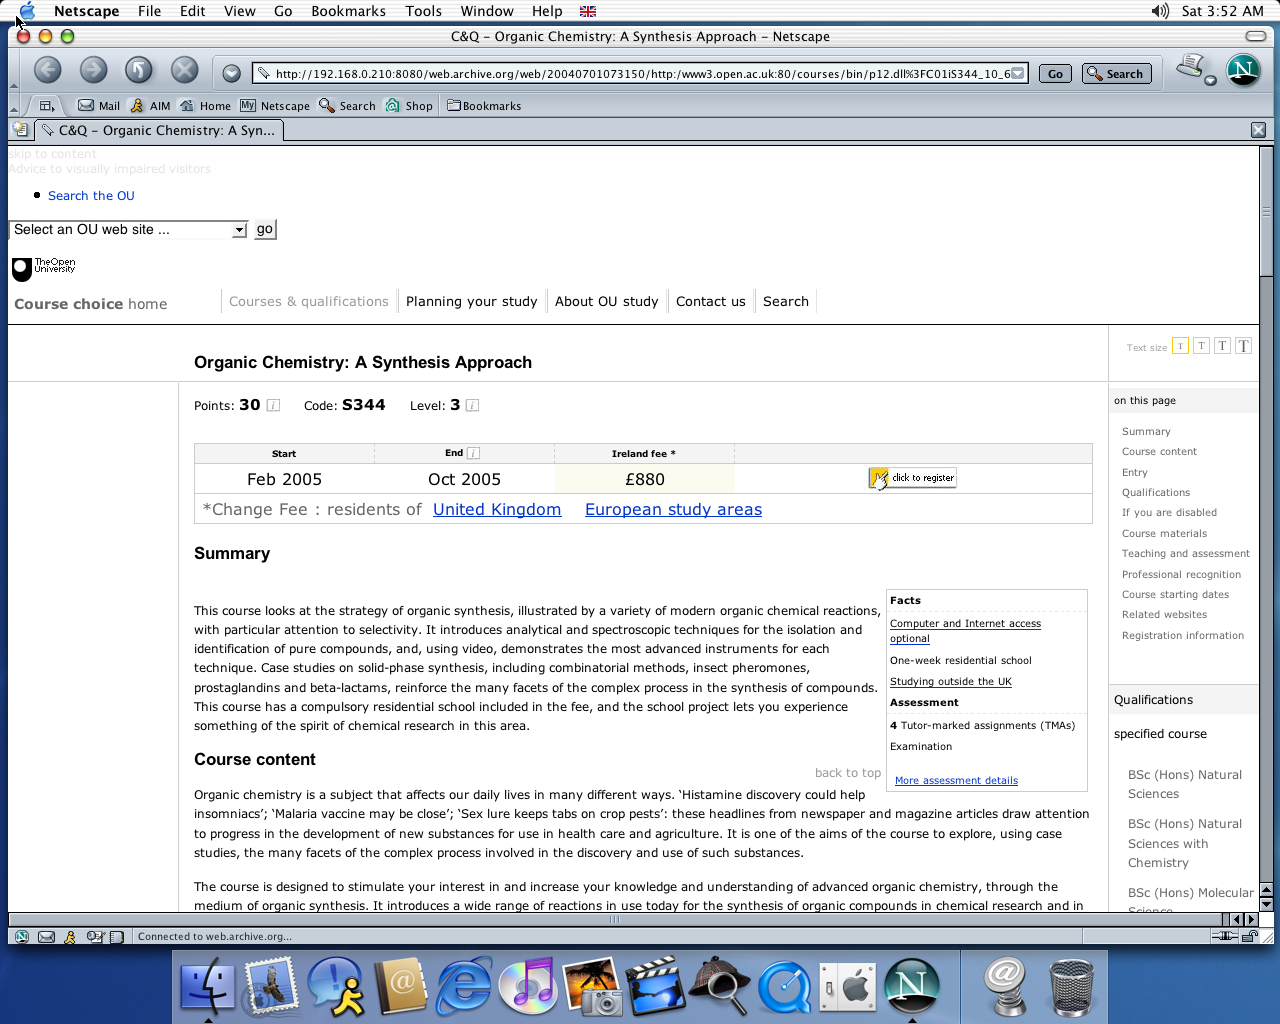 OS X 10.2 PPC with Netscape 7.0 displaying a page from Open University archived at July 01, 2004 at 07:31:50